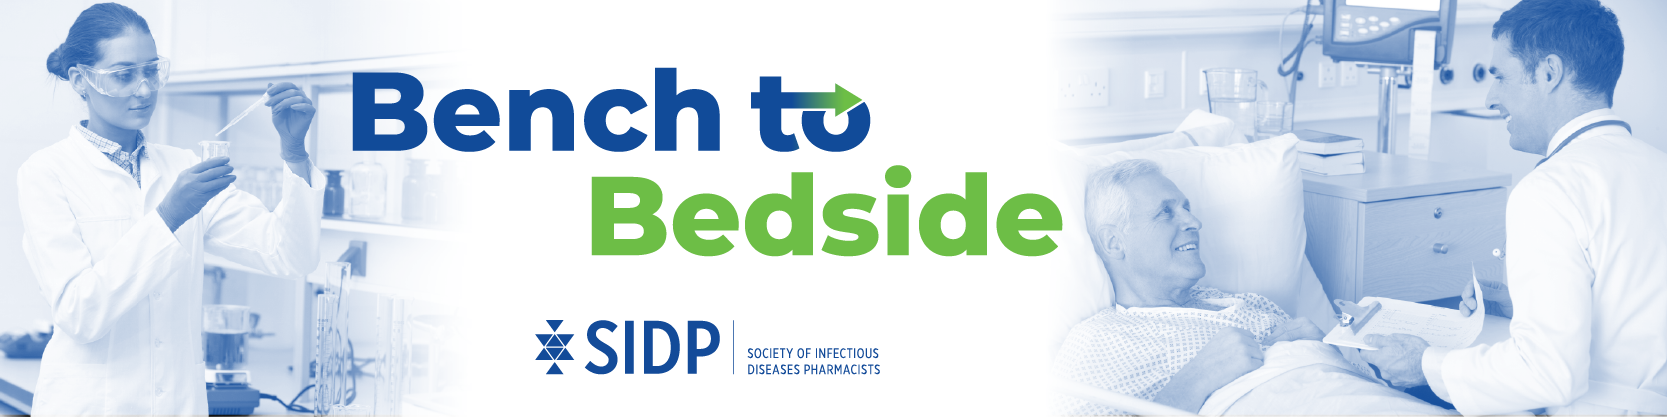 Society of Infectious Diseases Pharmacists